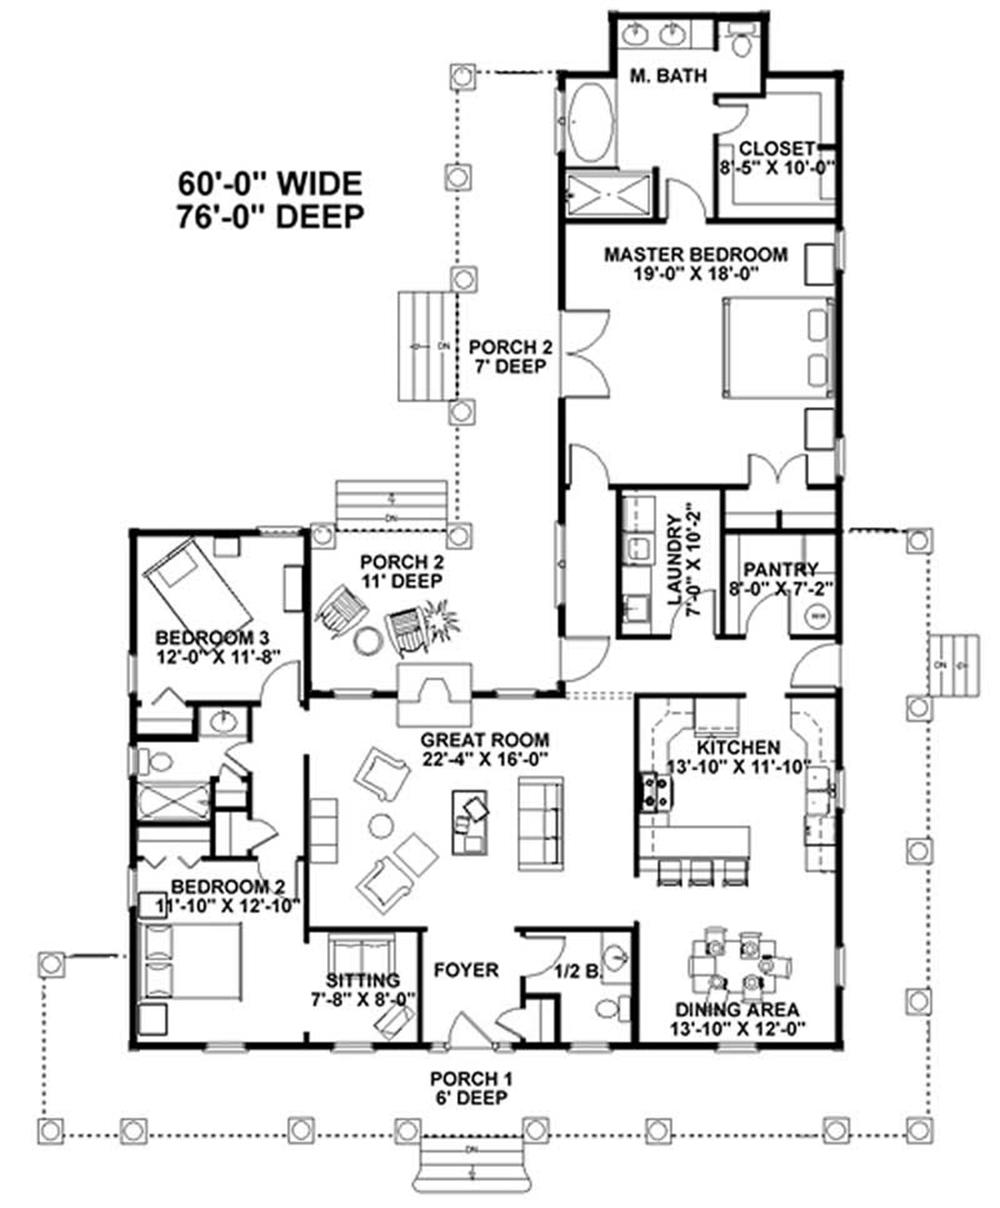 House Perspective With Floor Plan Overideas